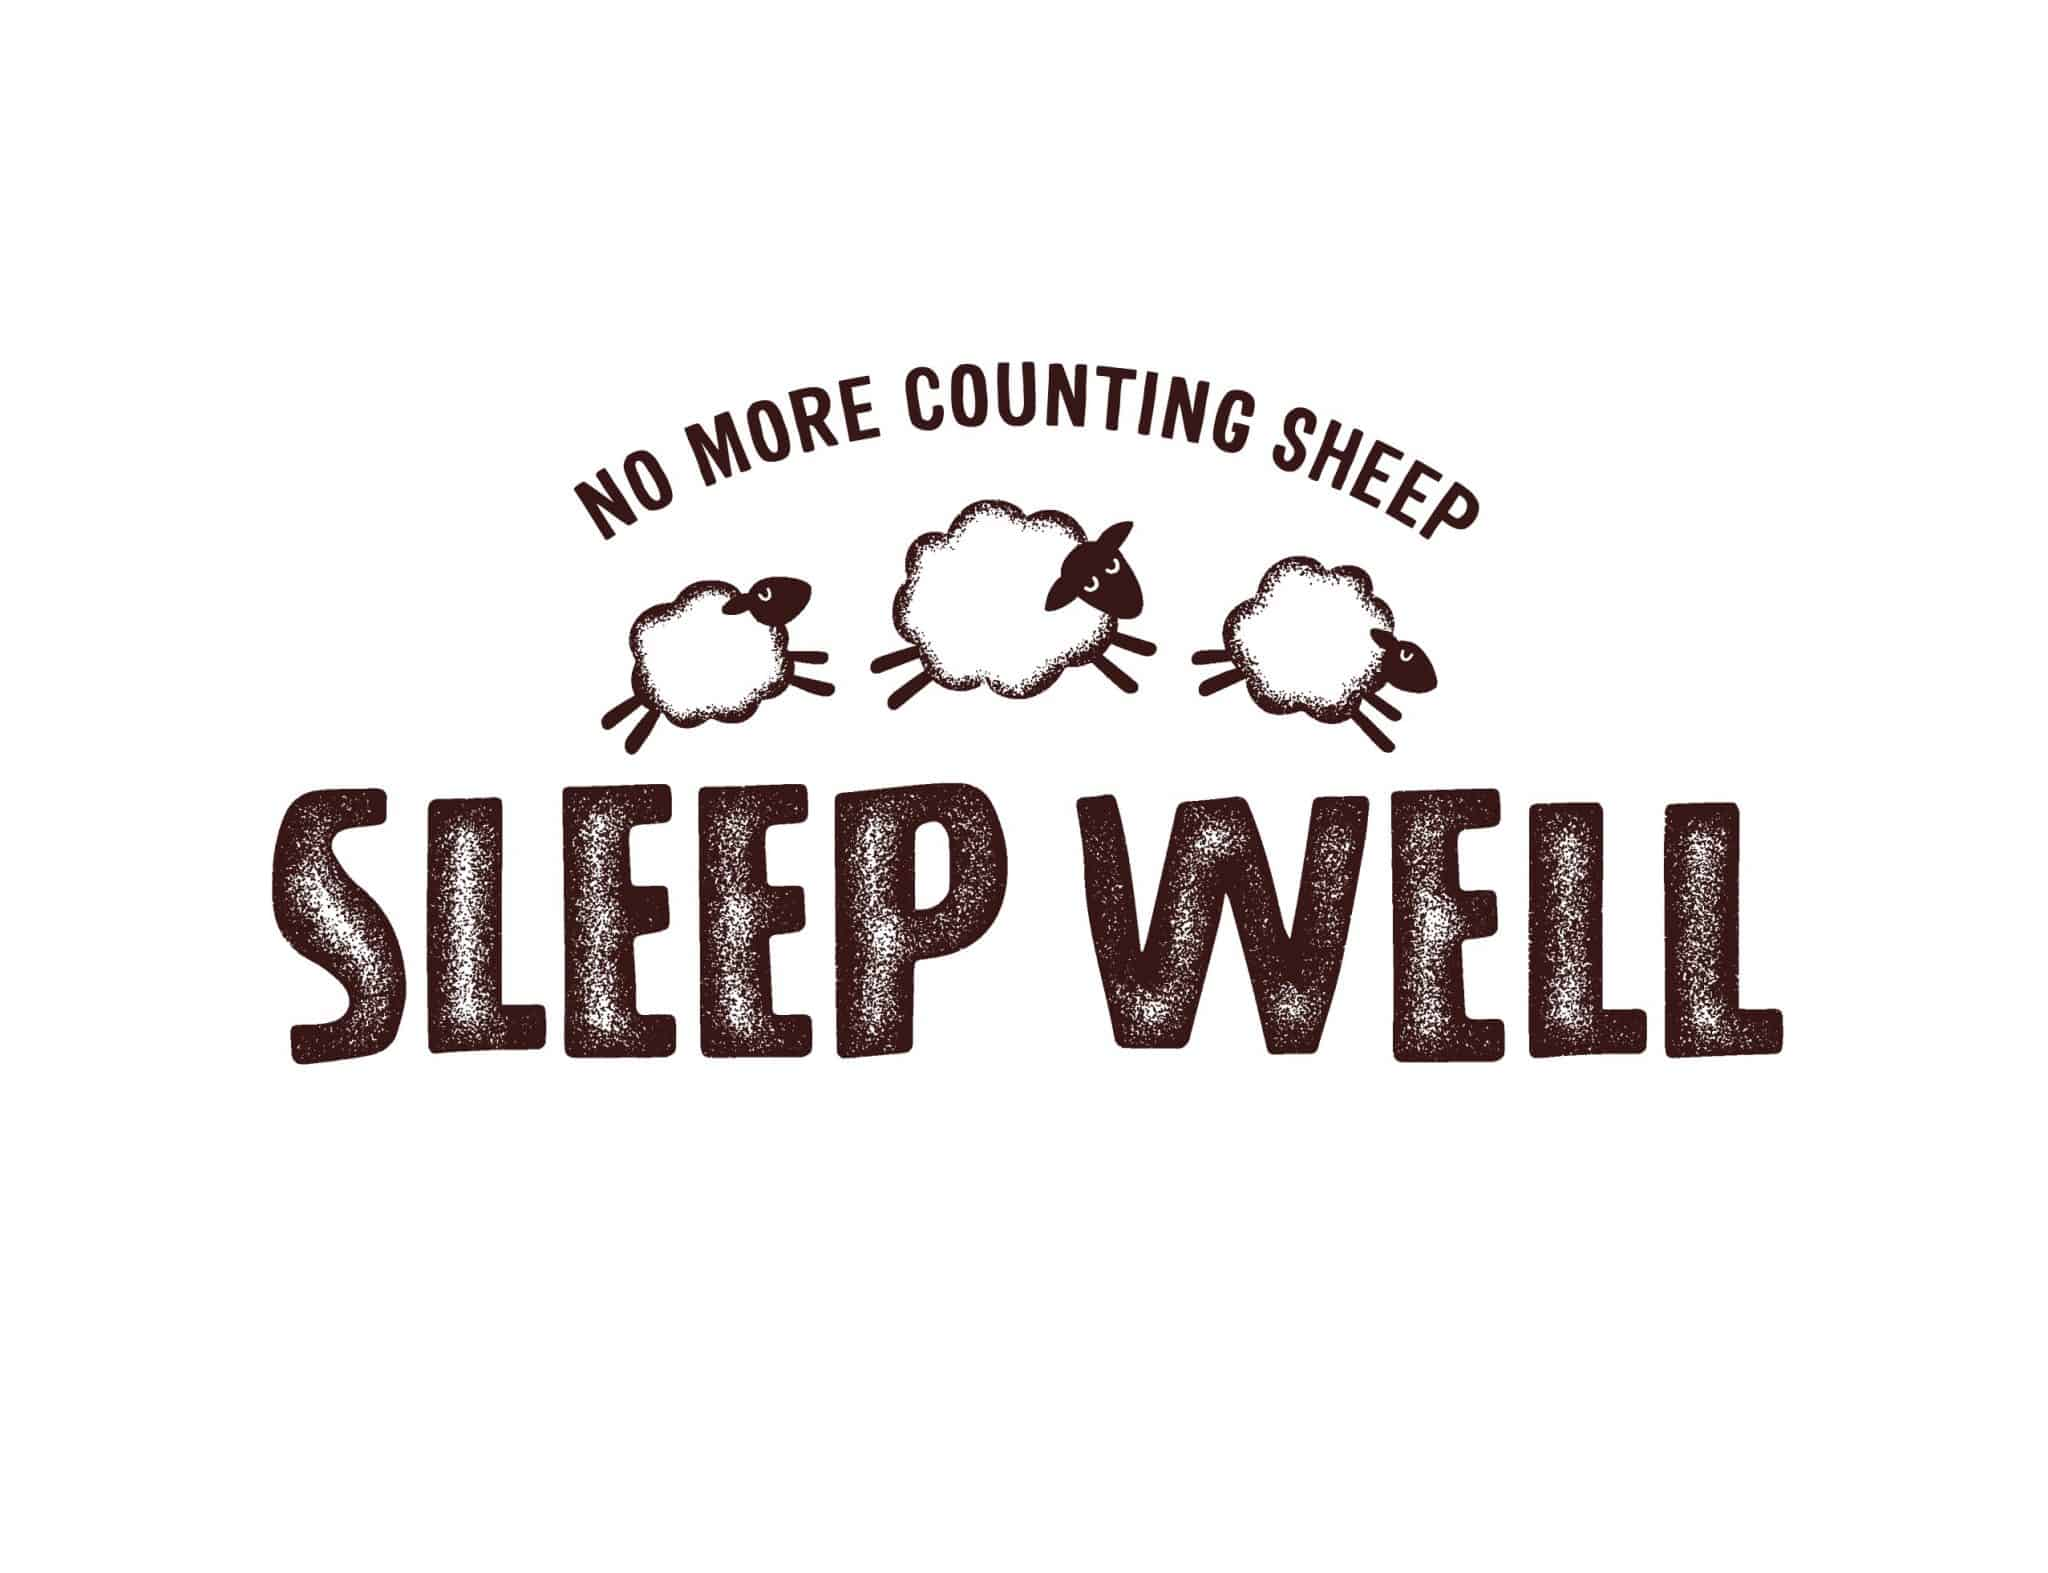 Sleep-Well milk logo